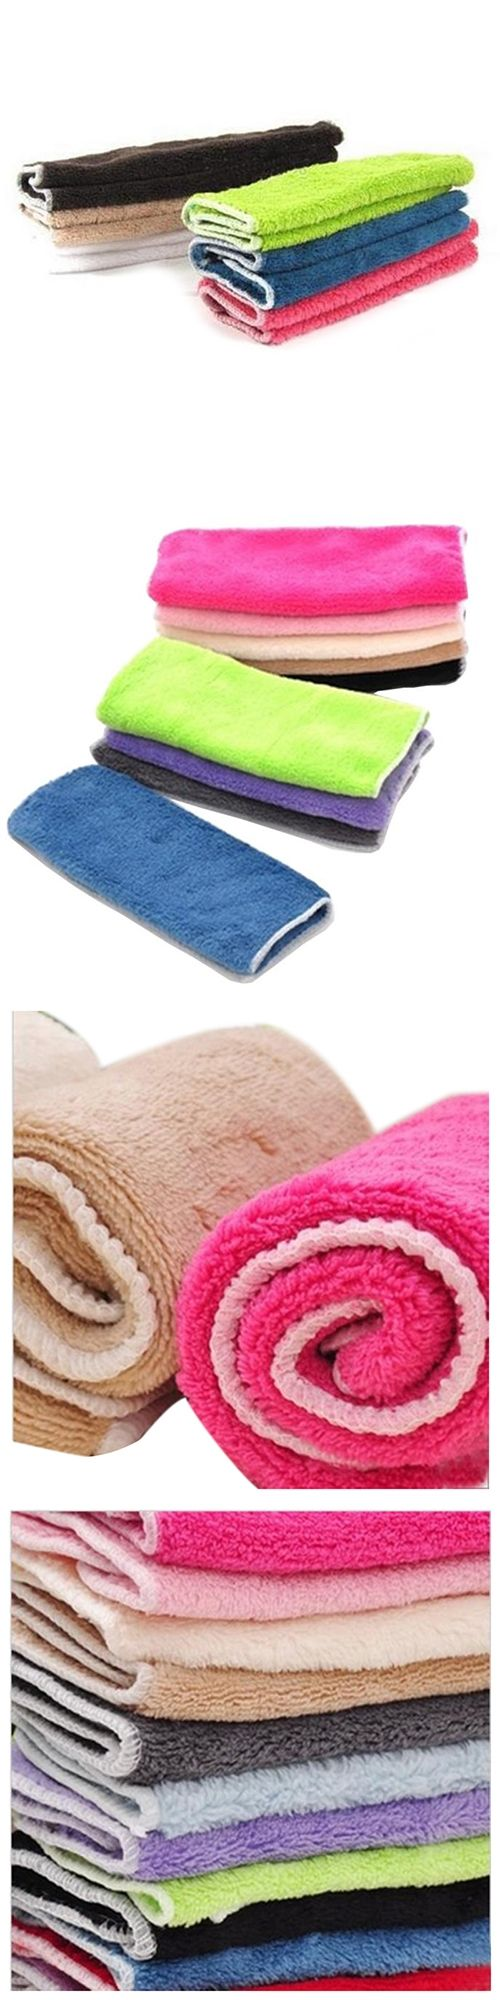 Anti-grease Cloth Bamboo Fiber Washing Towel Magic Kitchen Cleaning Wiping Rags